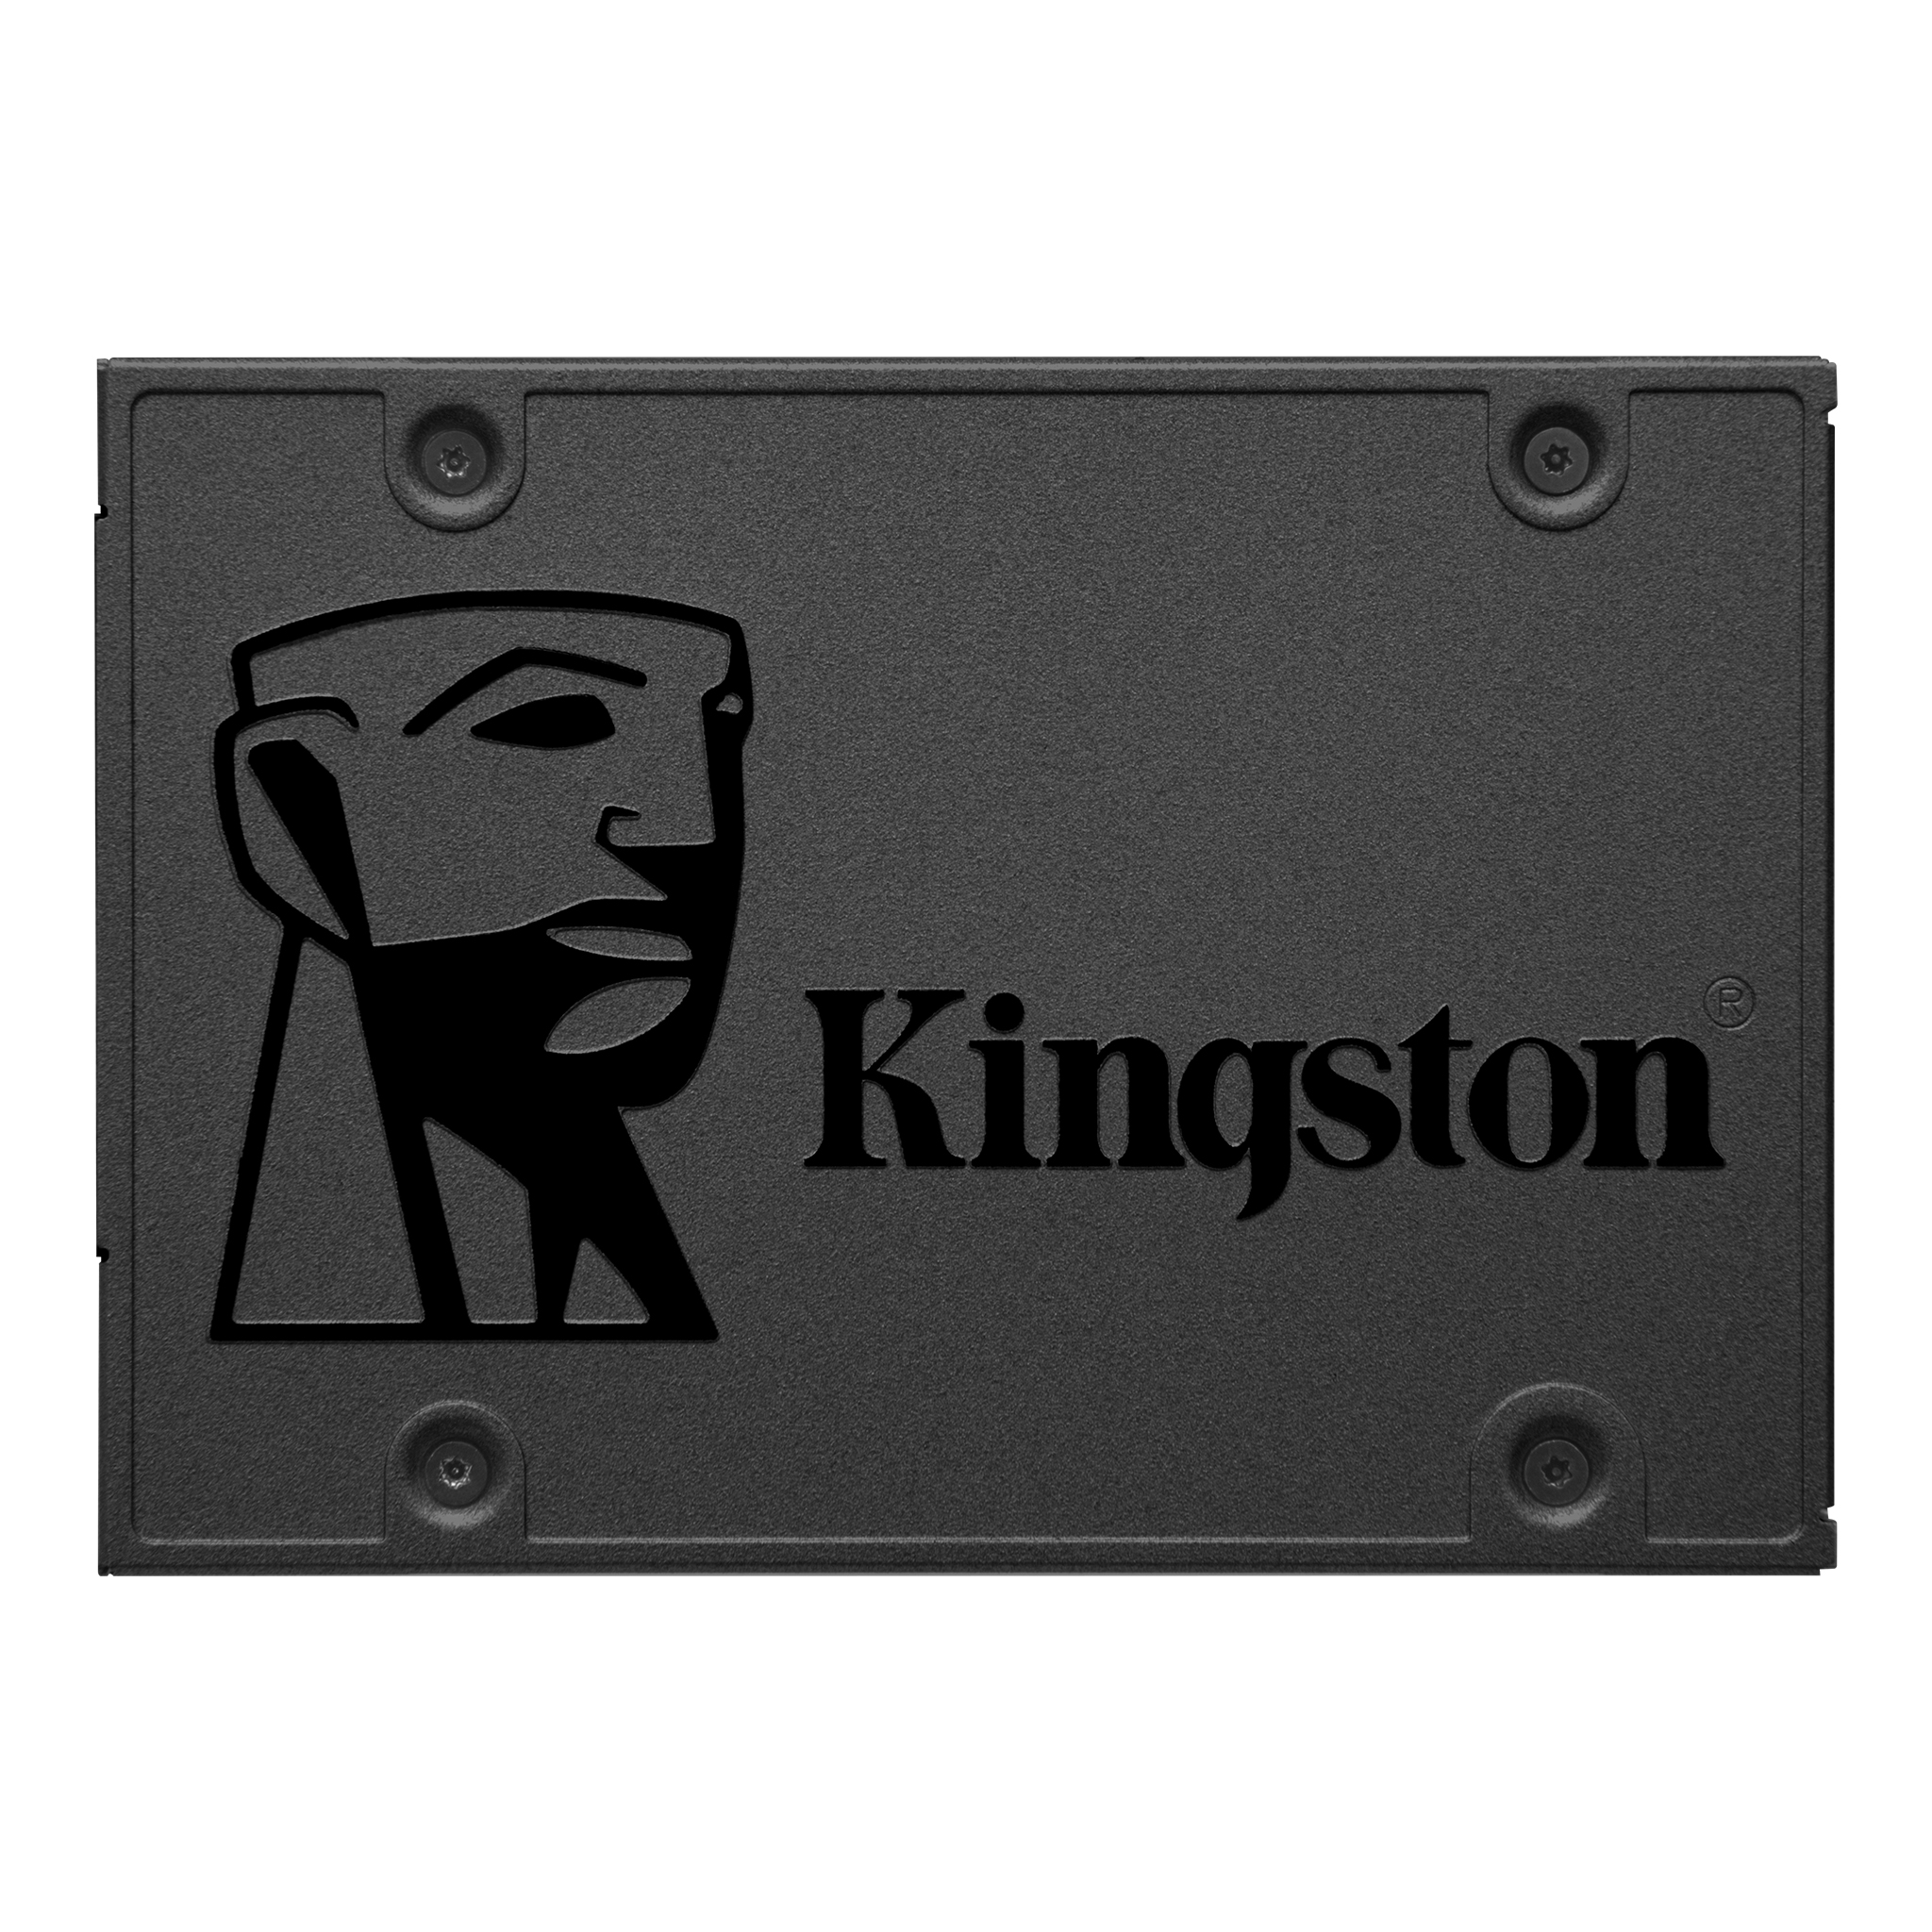 Hard Drives Kingston SSDNow A400 (480GB) SATA 3 2.5 inch SSD